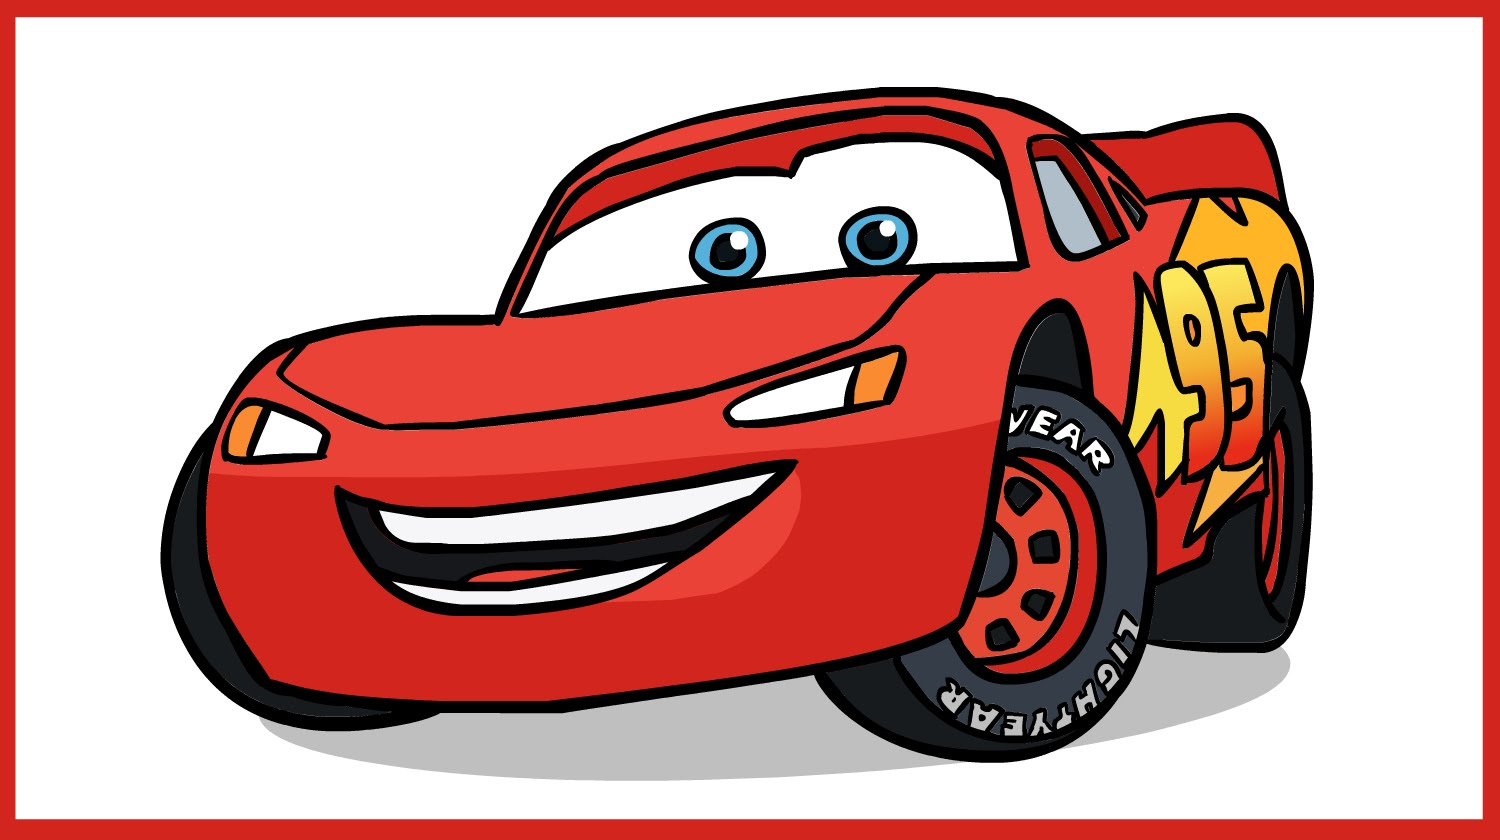 1500x840 How To Draw Lightning Mcqueen. Cars Disney Pixar.